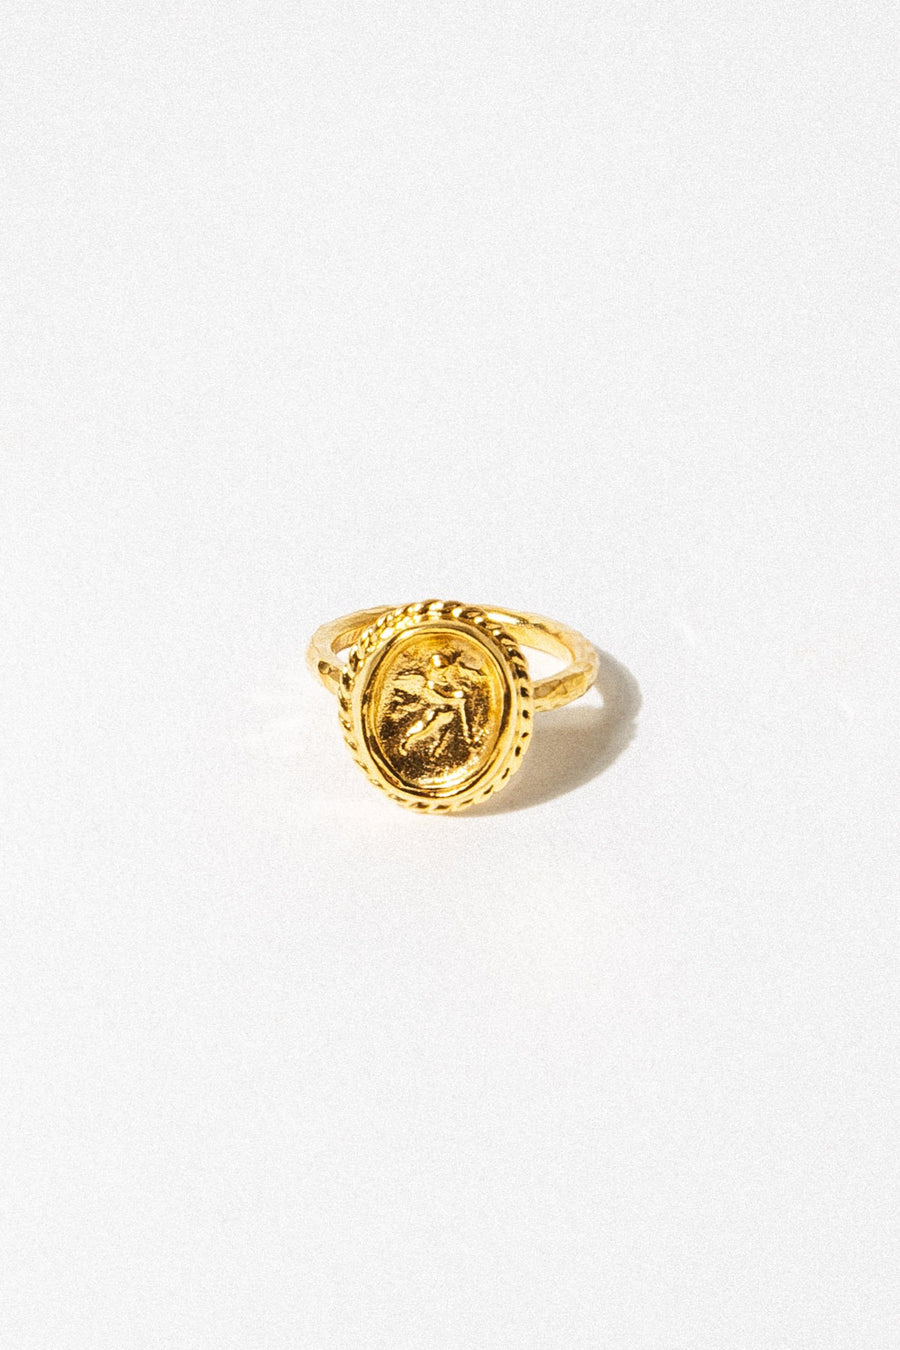 CAPRIXUS Jewelry Cupid Signet Ring